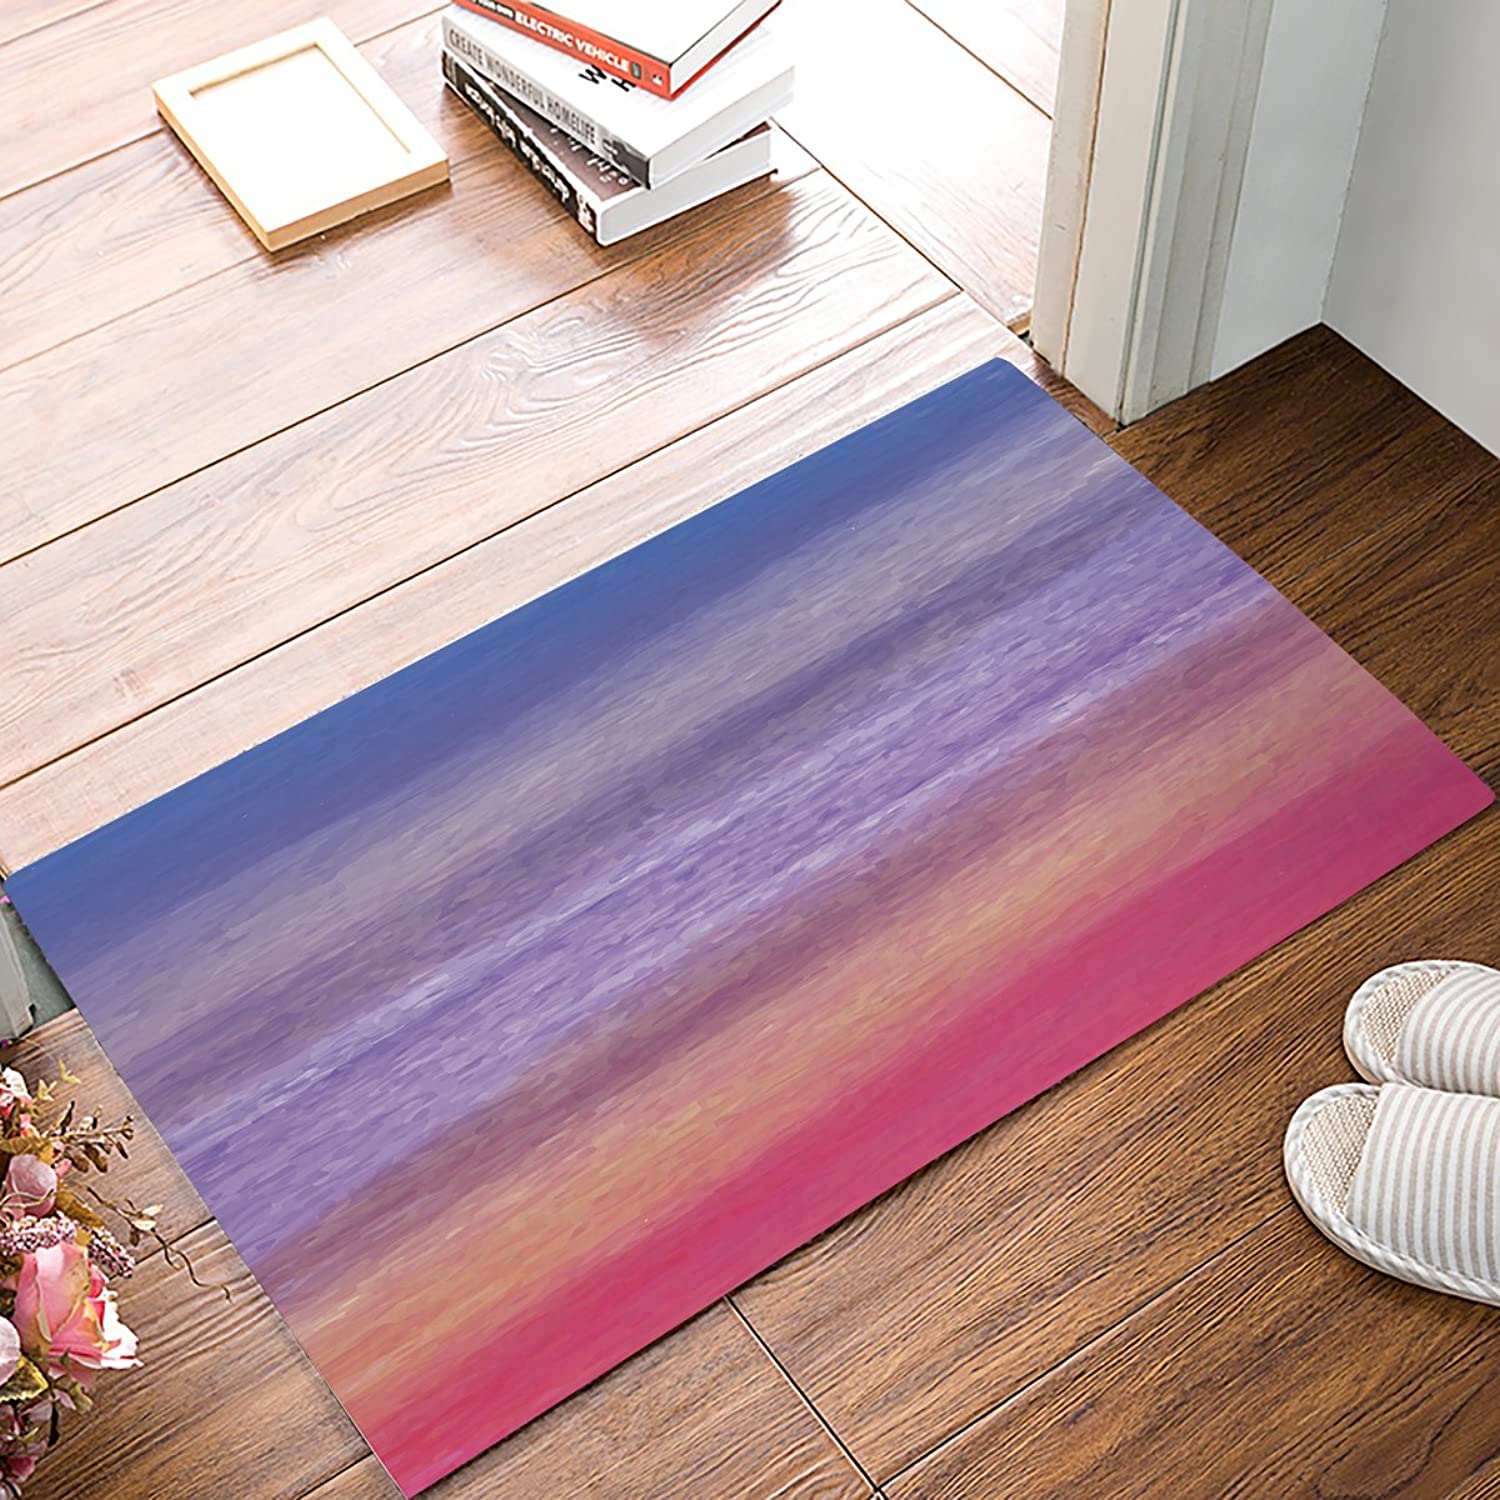 Brawvy Non Slip Resilient Indoor Doormat Absorbent Entry Way Mat for Bathroom Kitchen Toilet Floor, Elegant Modern Watercolor Background Comfortable Home Deco,20 x 32